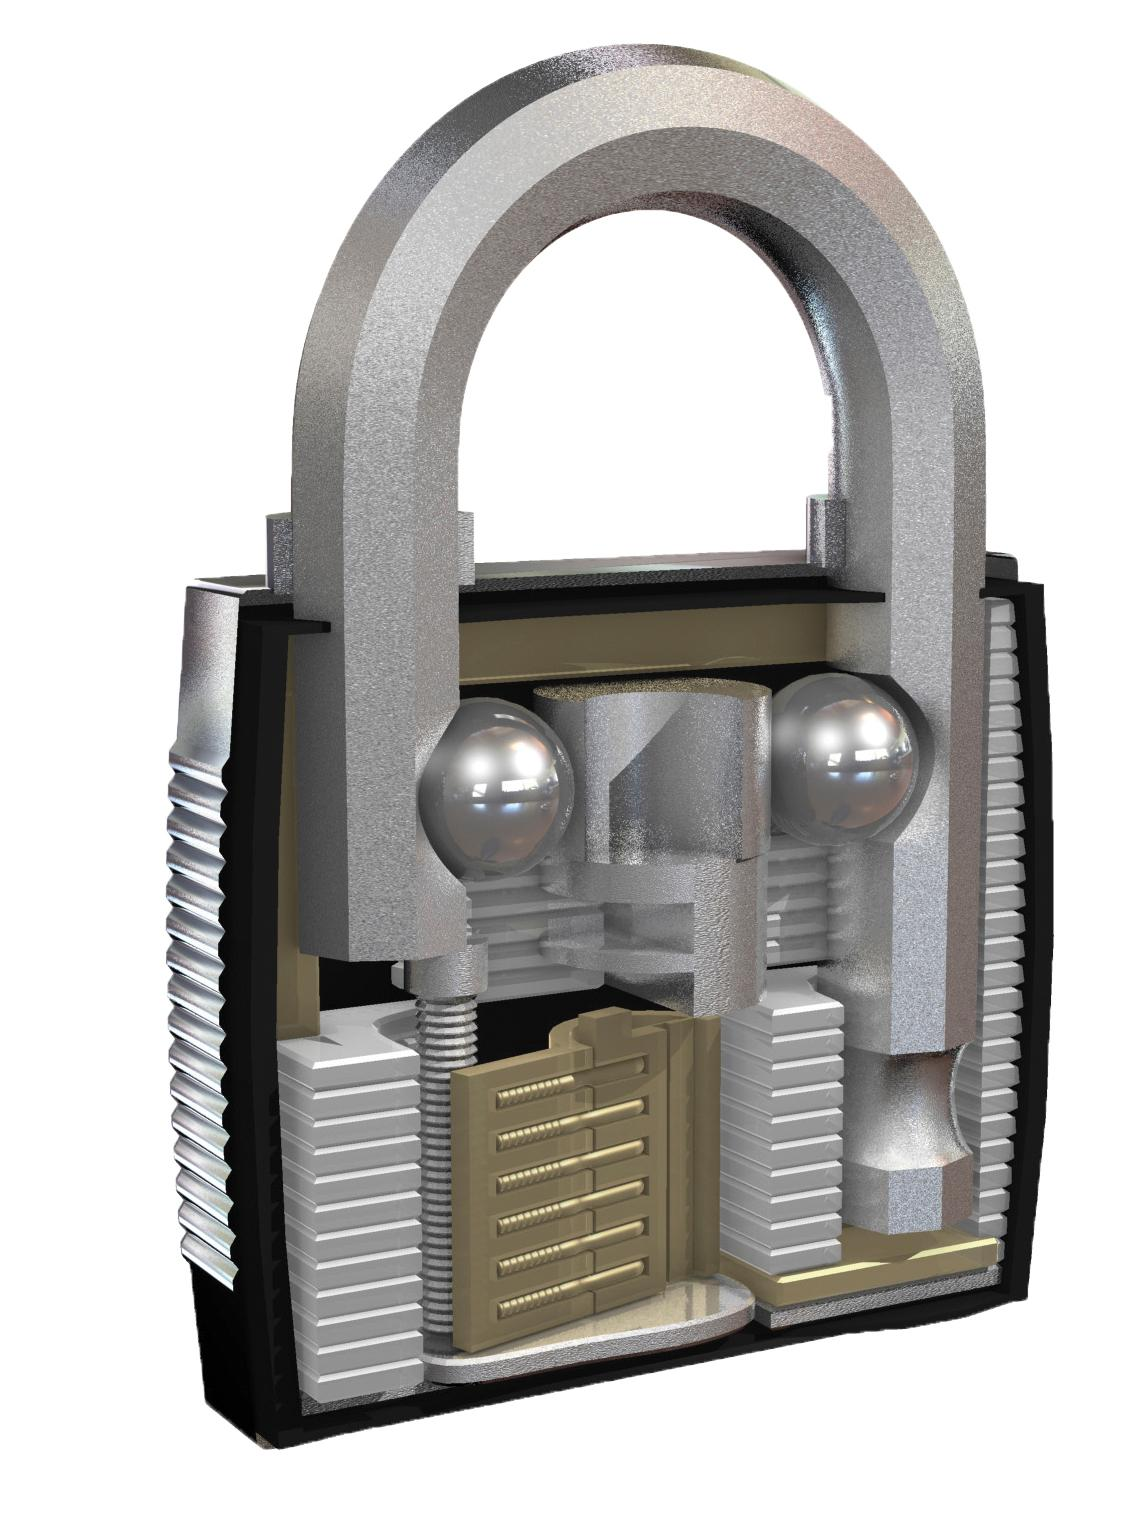 Master Lock M175eurdlf Excell 50mm 4 Digit Resettable